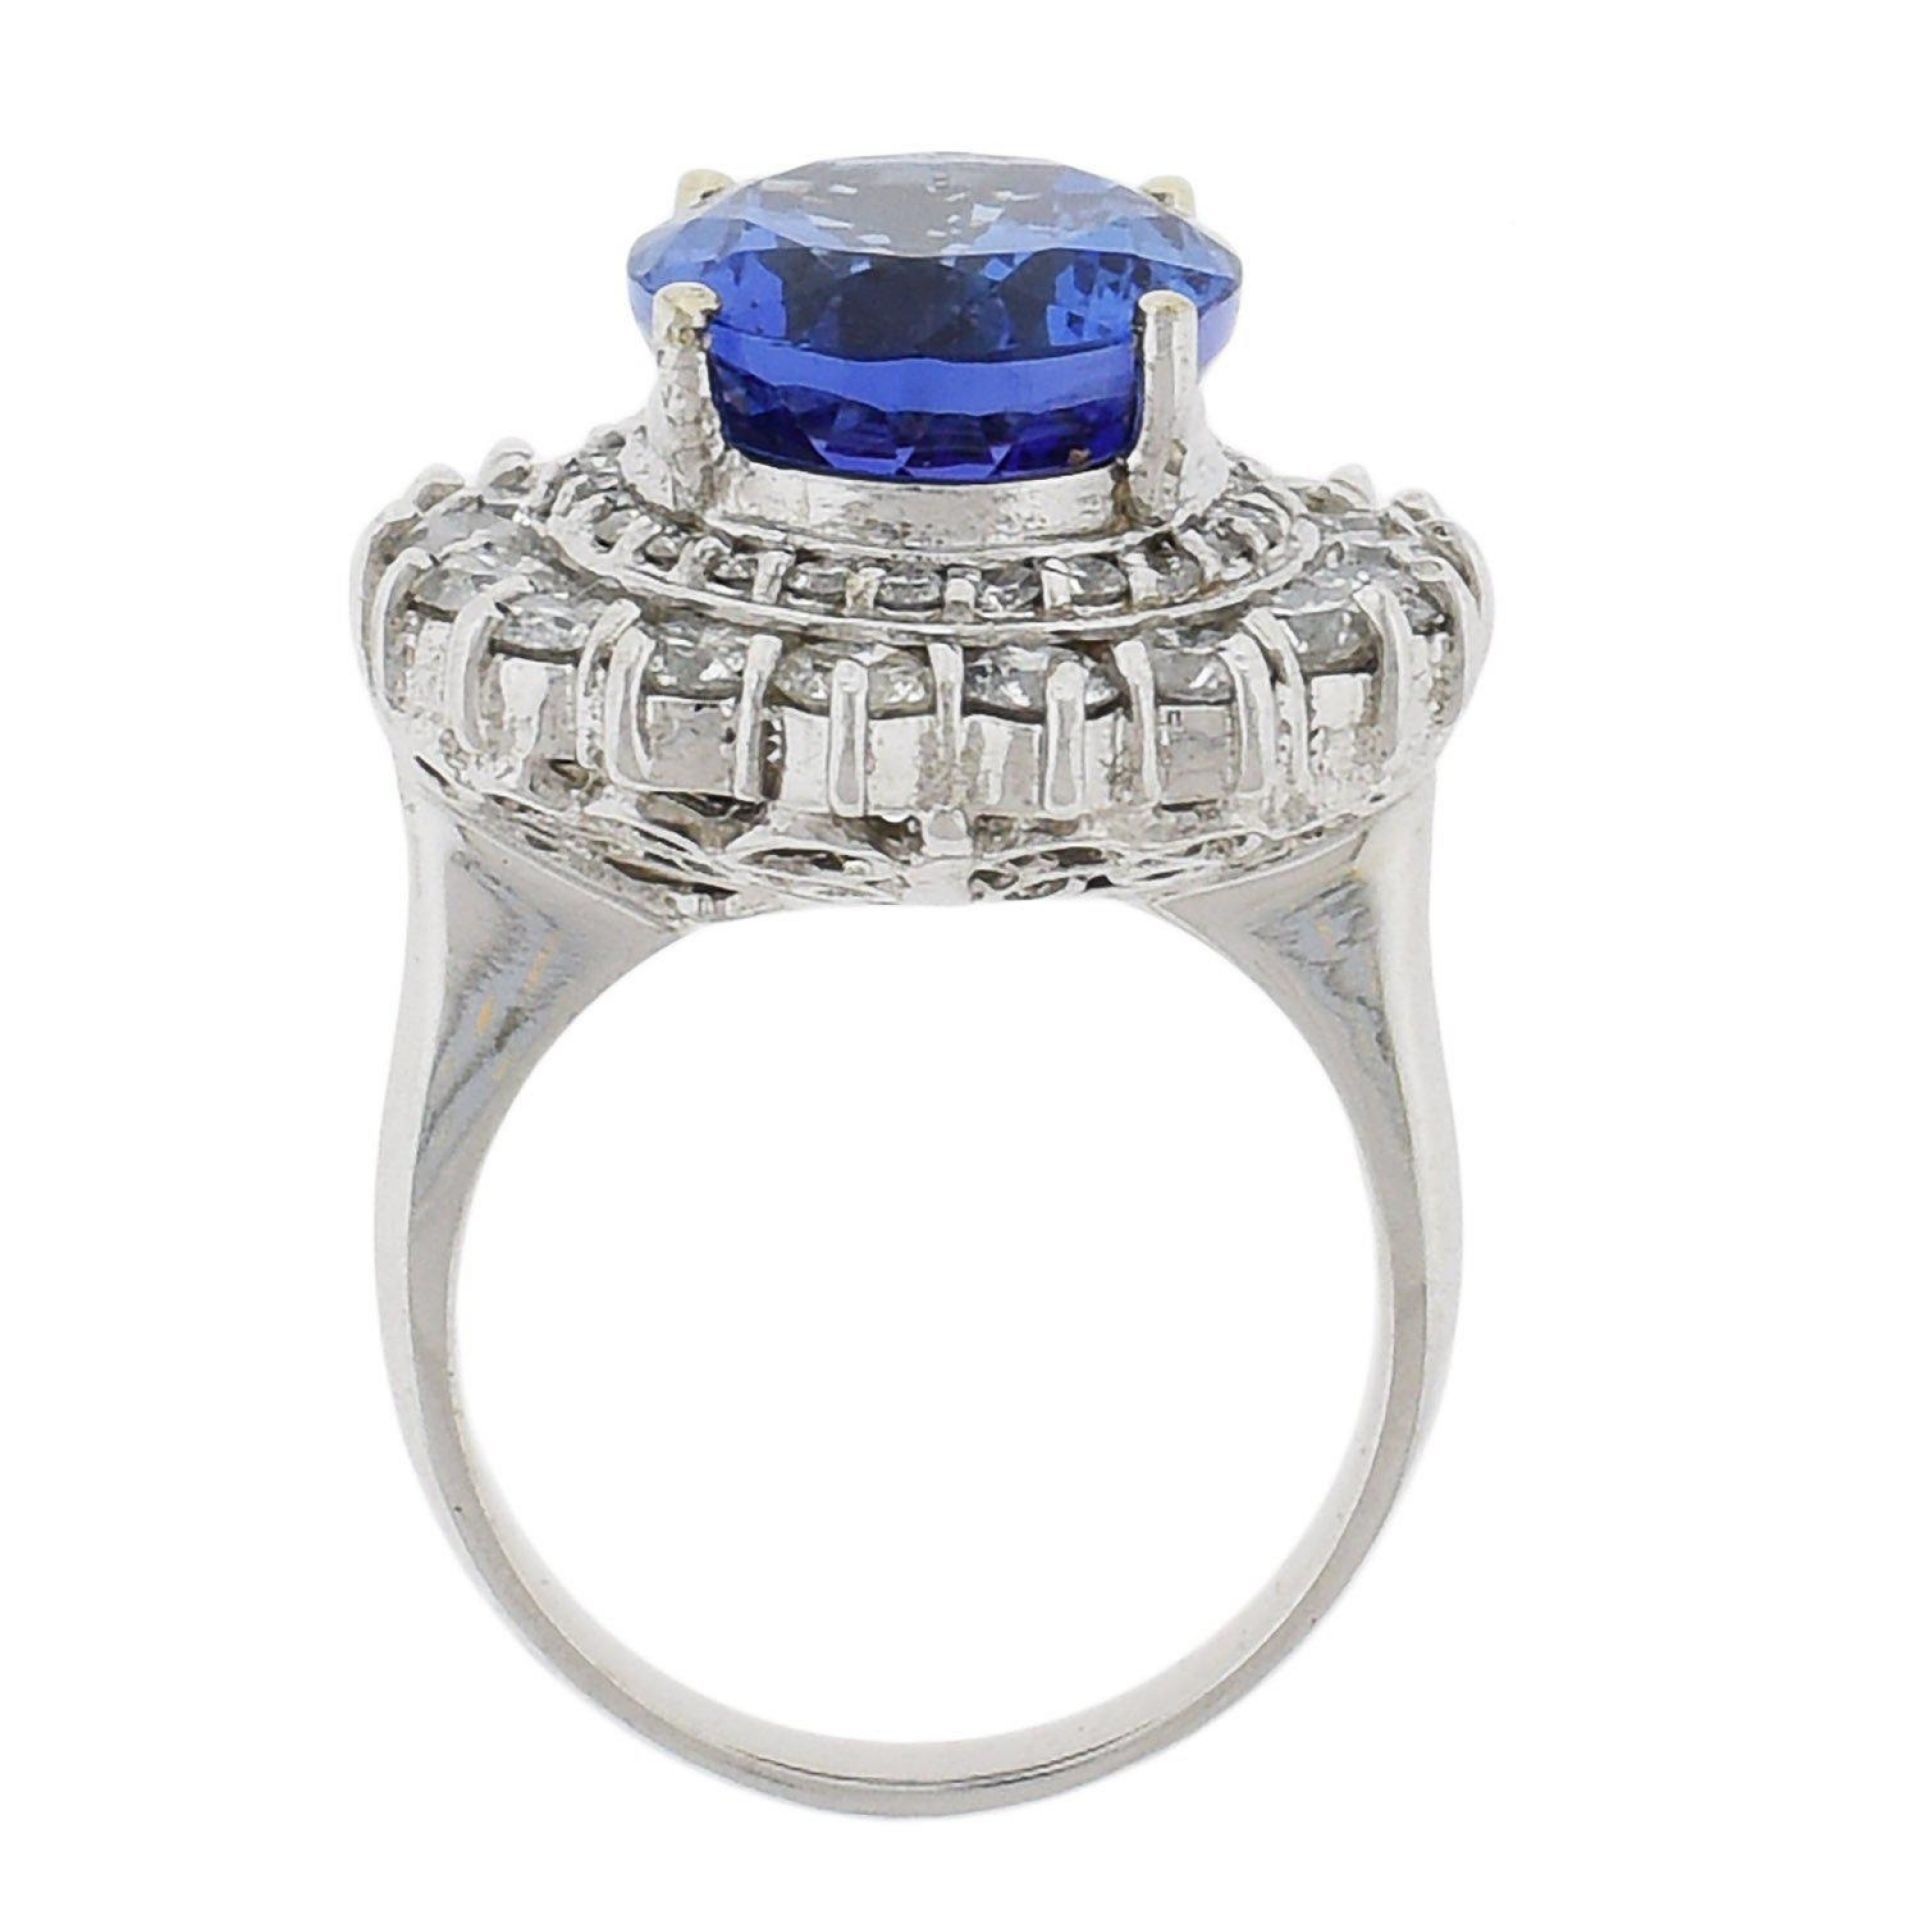 8.84ct Tanzanite and 2.39ctw Diamond 14KT White Gold Ring (GIA CERTIFIED)